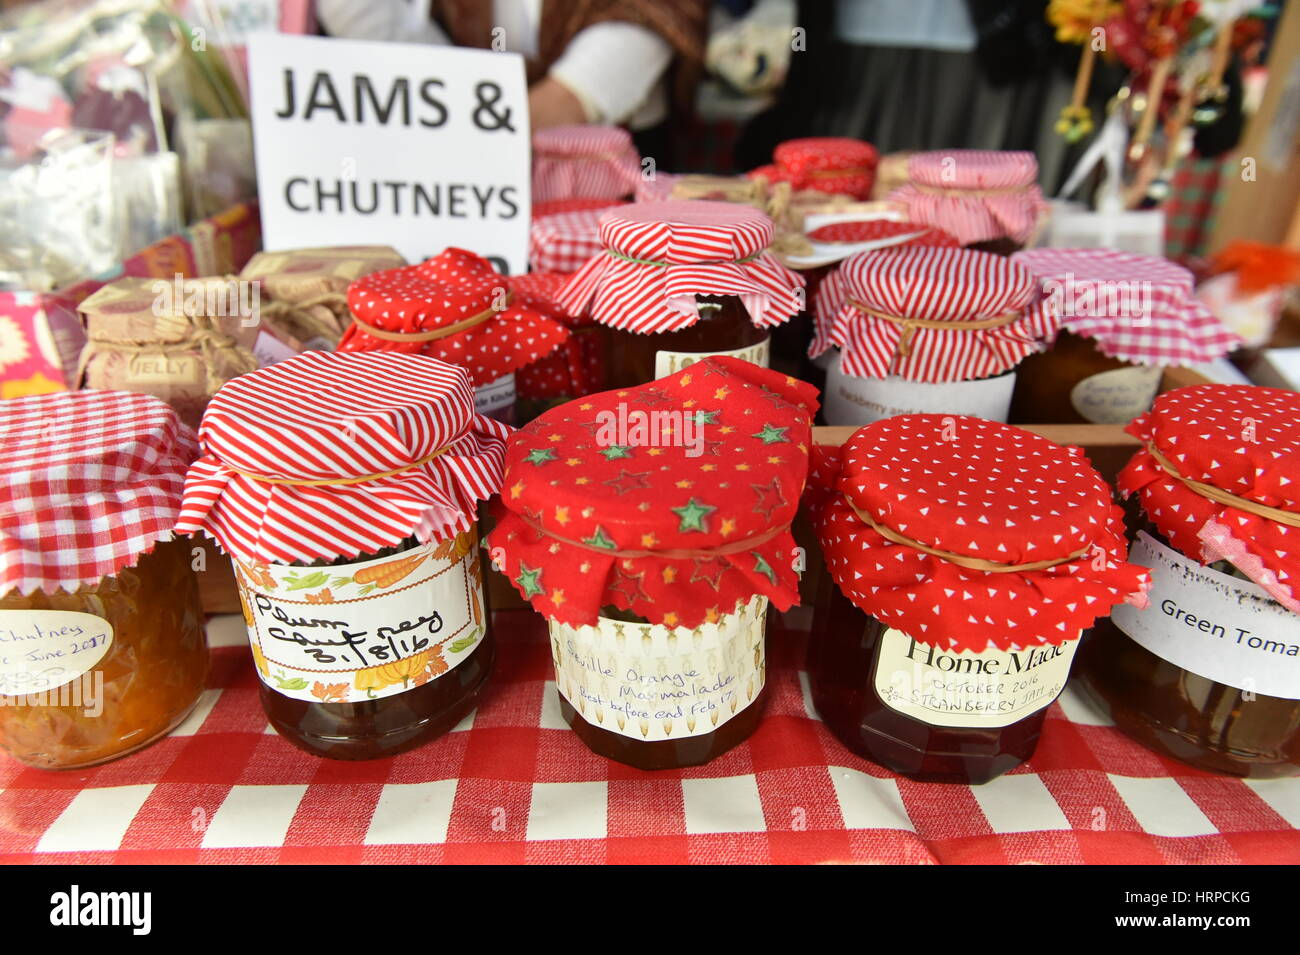 Homemade Jams and chutneys for sale on the Women's Institute stall, Bingley Yorkshire UK - Stock Image